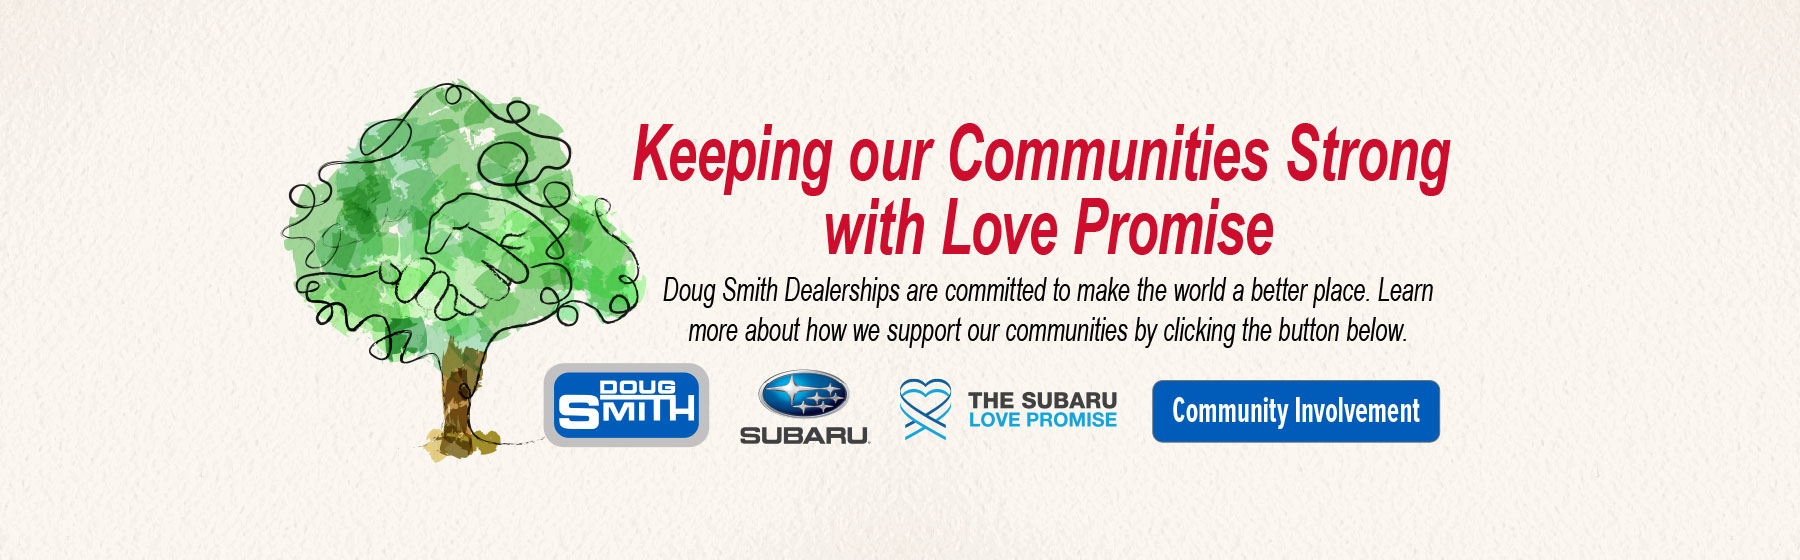 Doug Smith Subaru Dealership Supports our Community